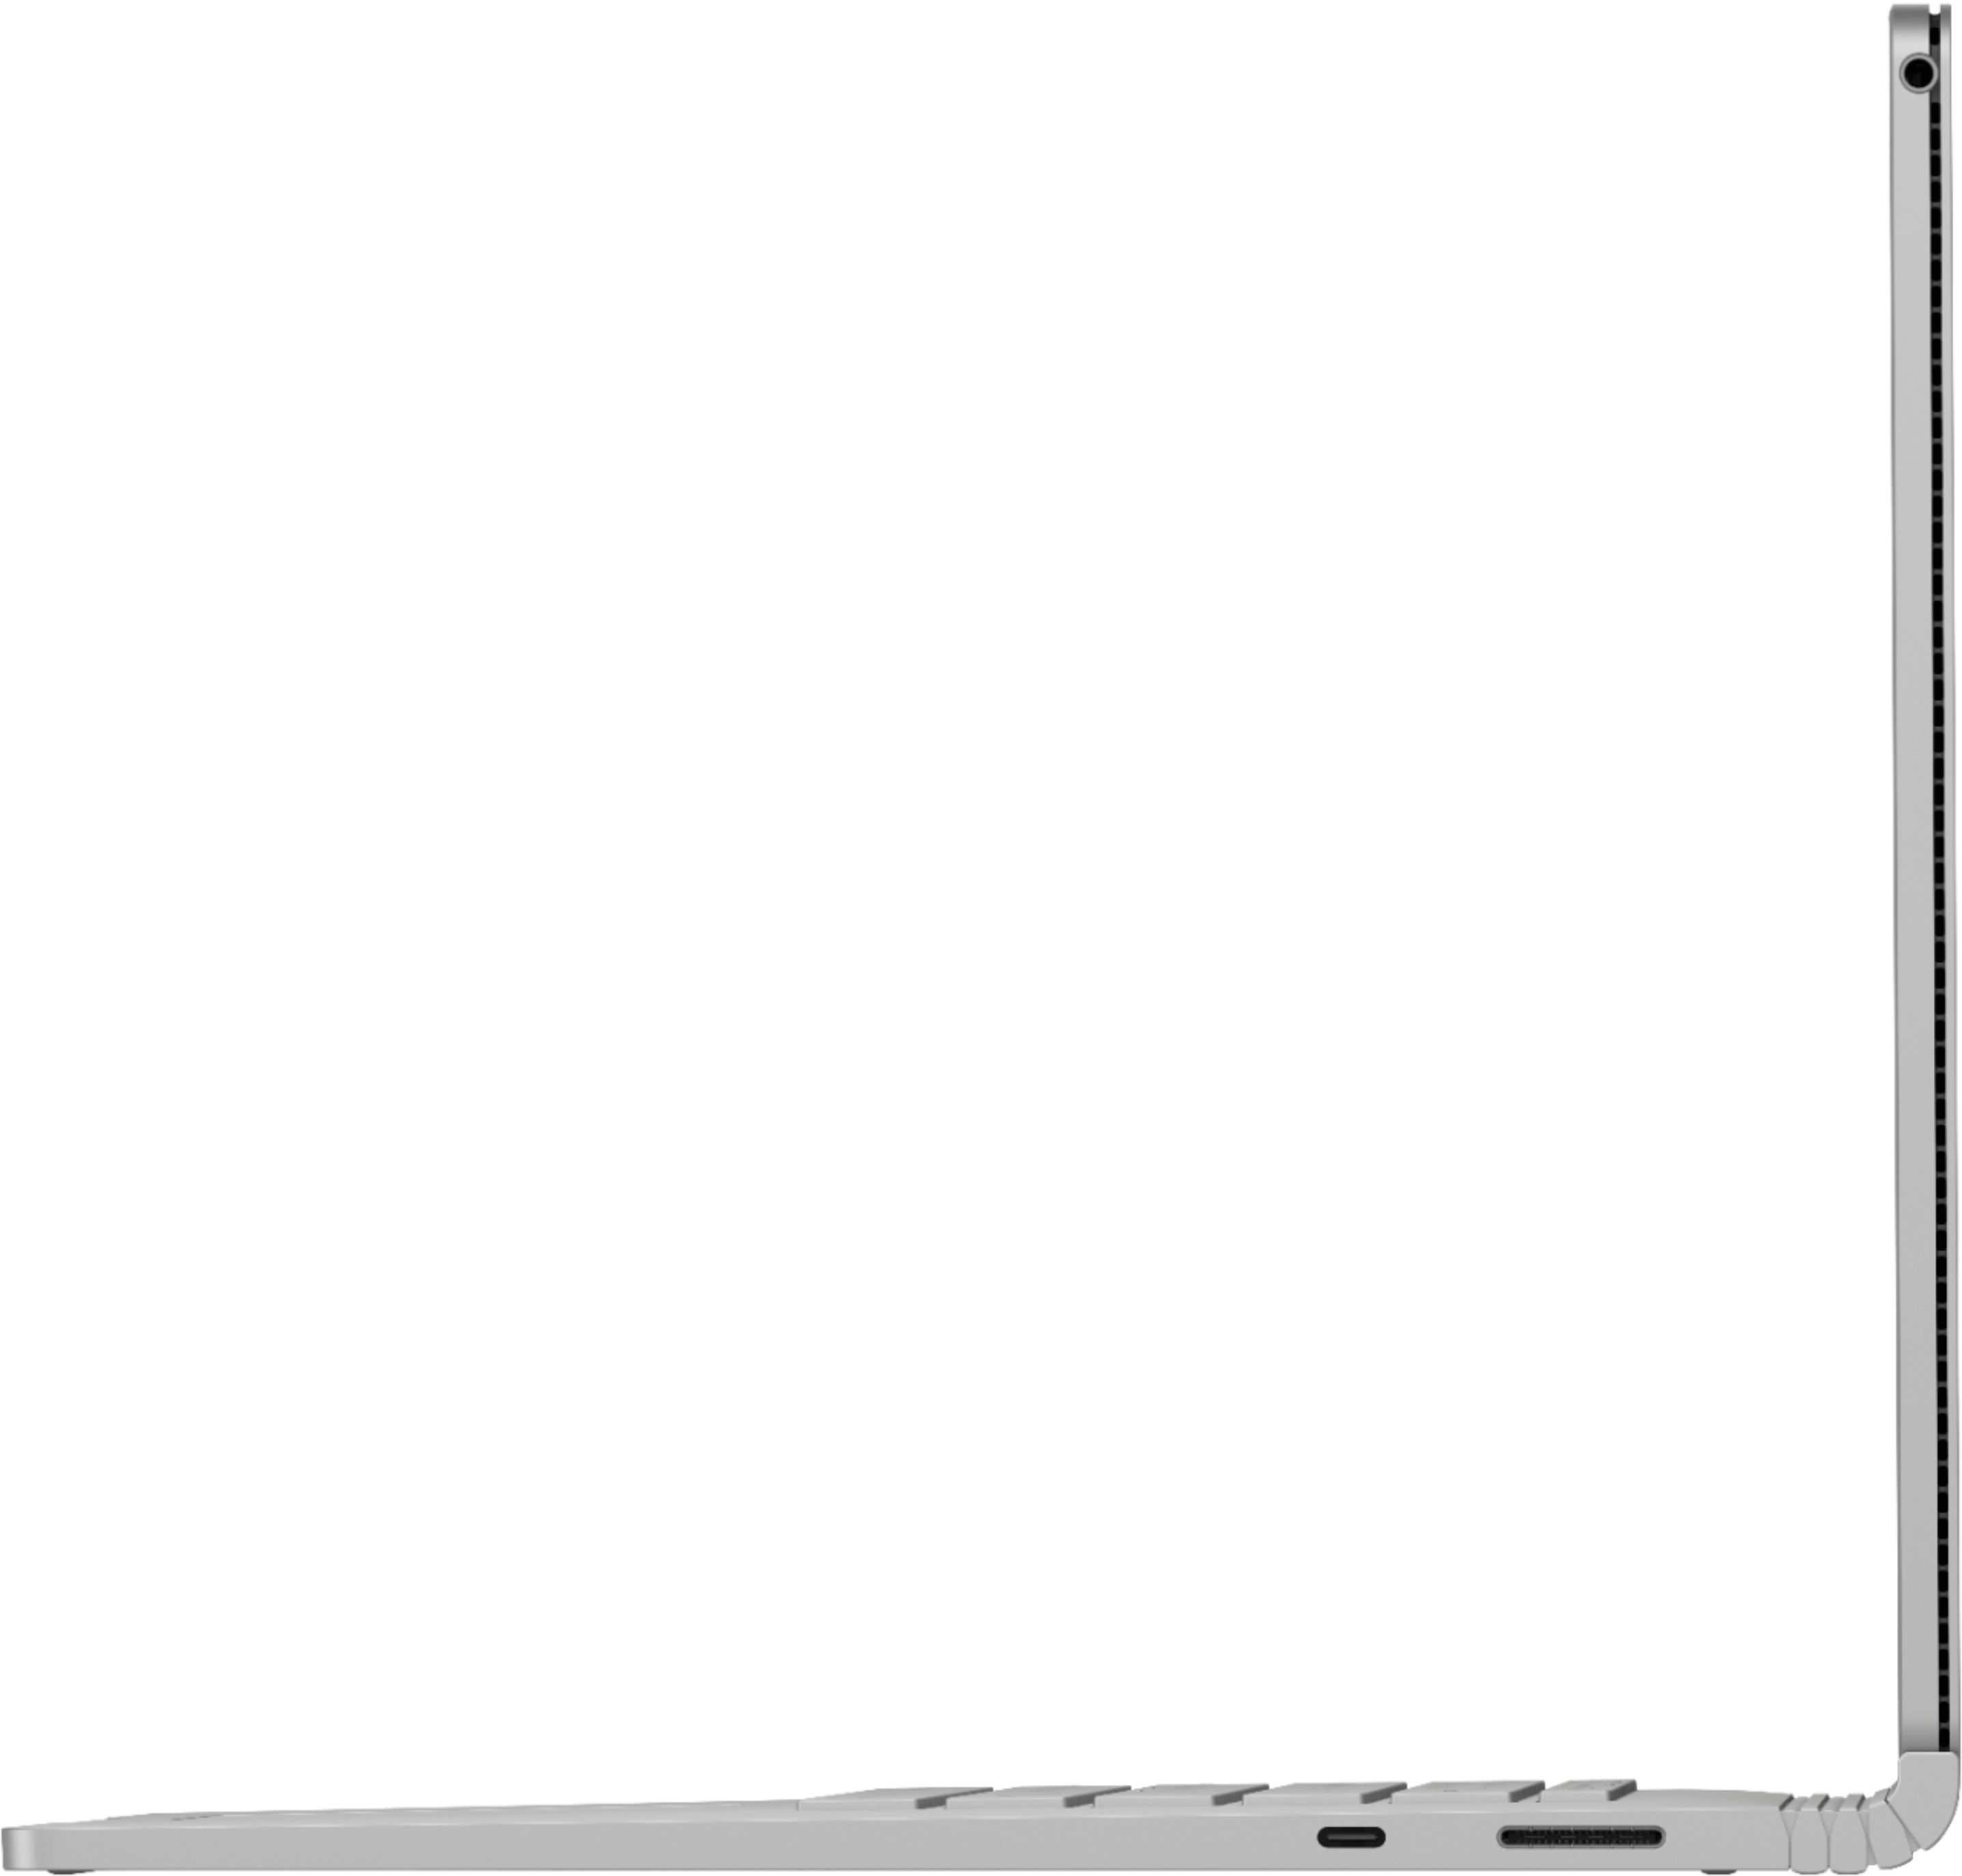 """Alt View Zoom 13. Microsoft - Surface Book 3 13.5"""" Touch-Screen PixelSense™ - 2-in-1 Laptop - Intel Core i7 - 16GB Memory - 256GB SSD - Platinum."""